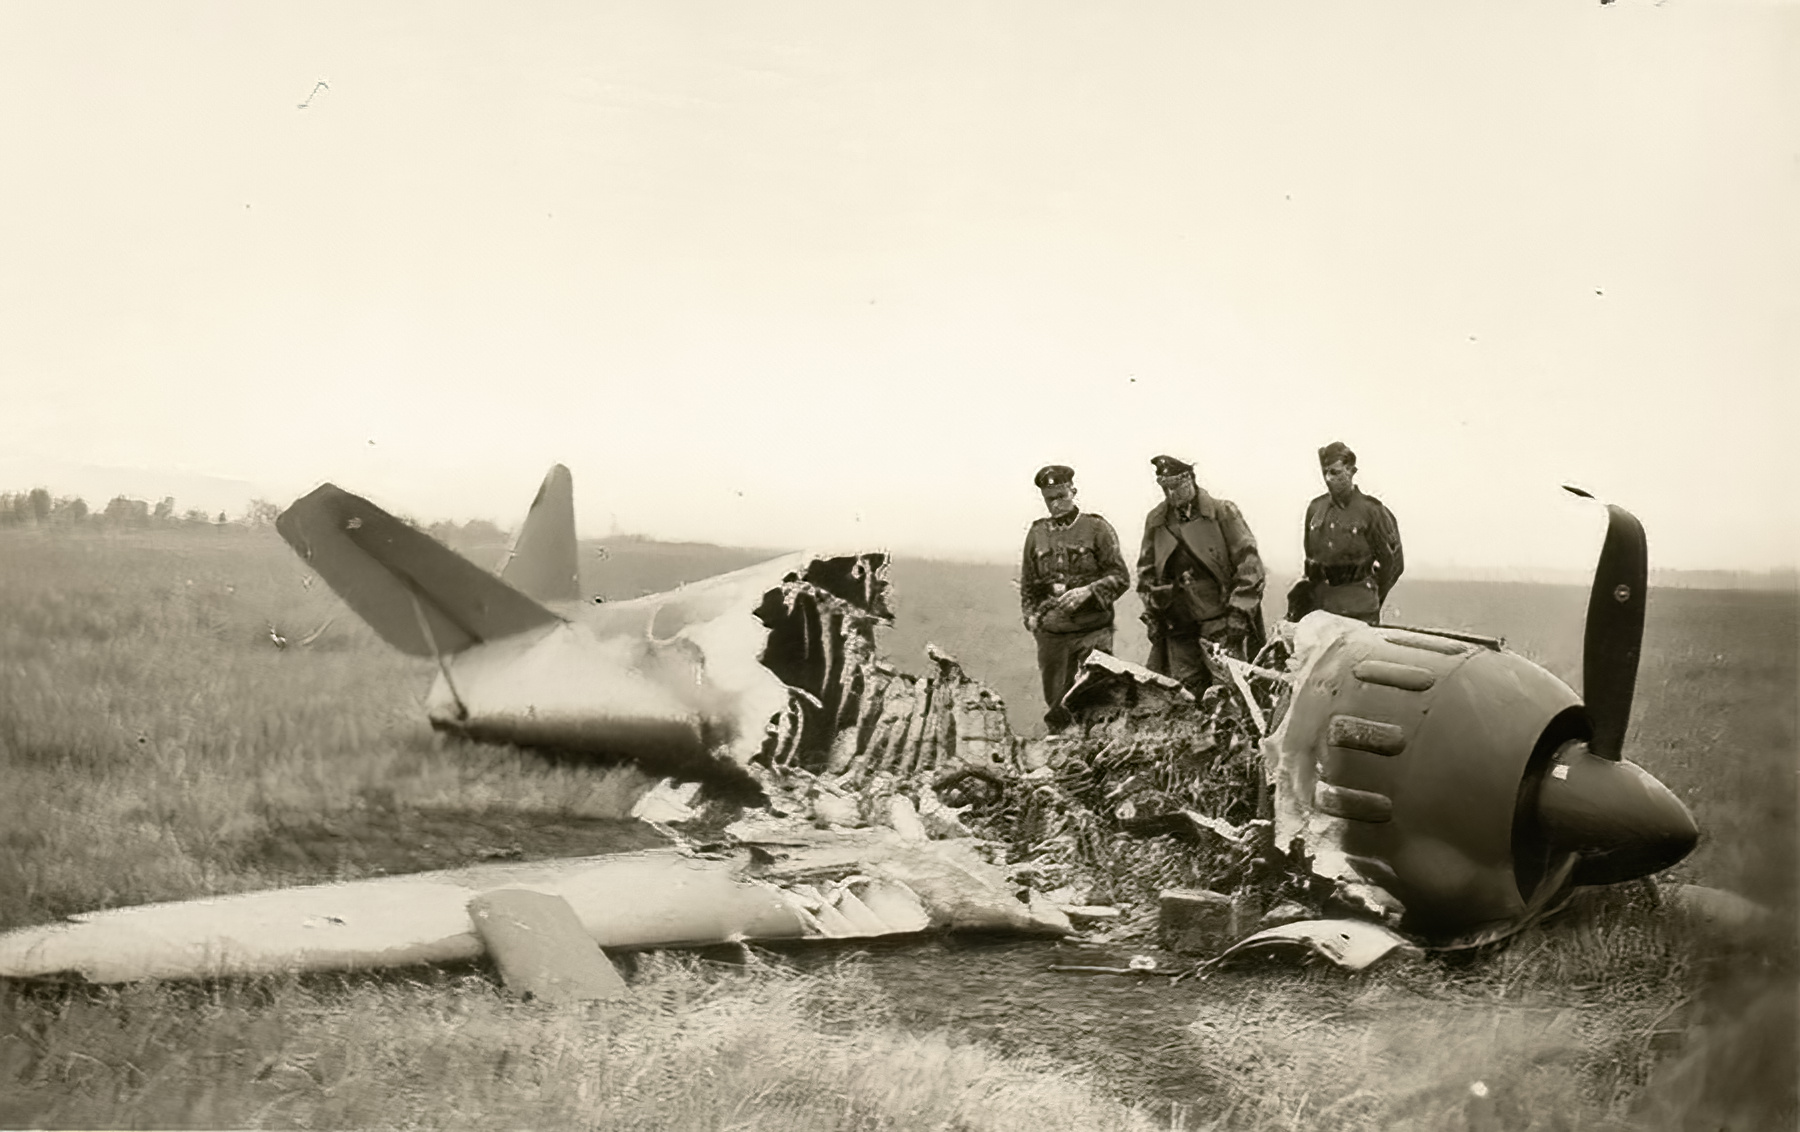 French Airforce Bloch MB 152C1 destroyed after force landing France May Jun 1940 ebay 01